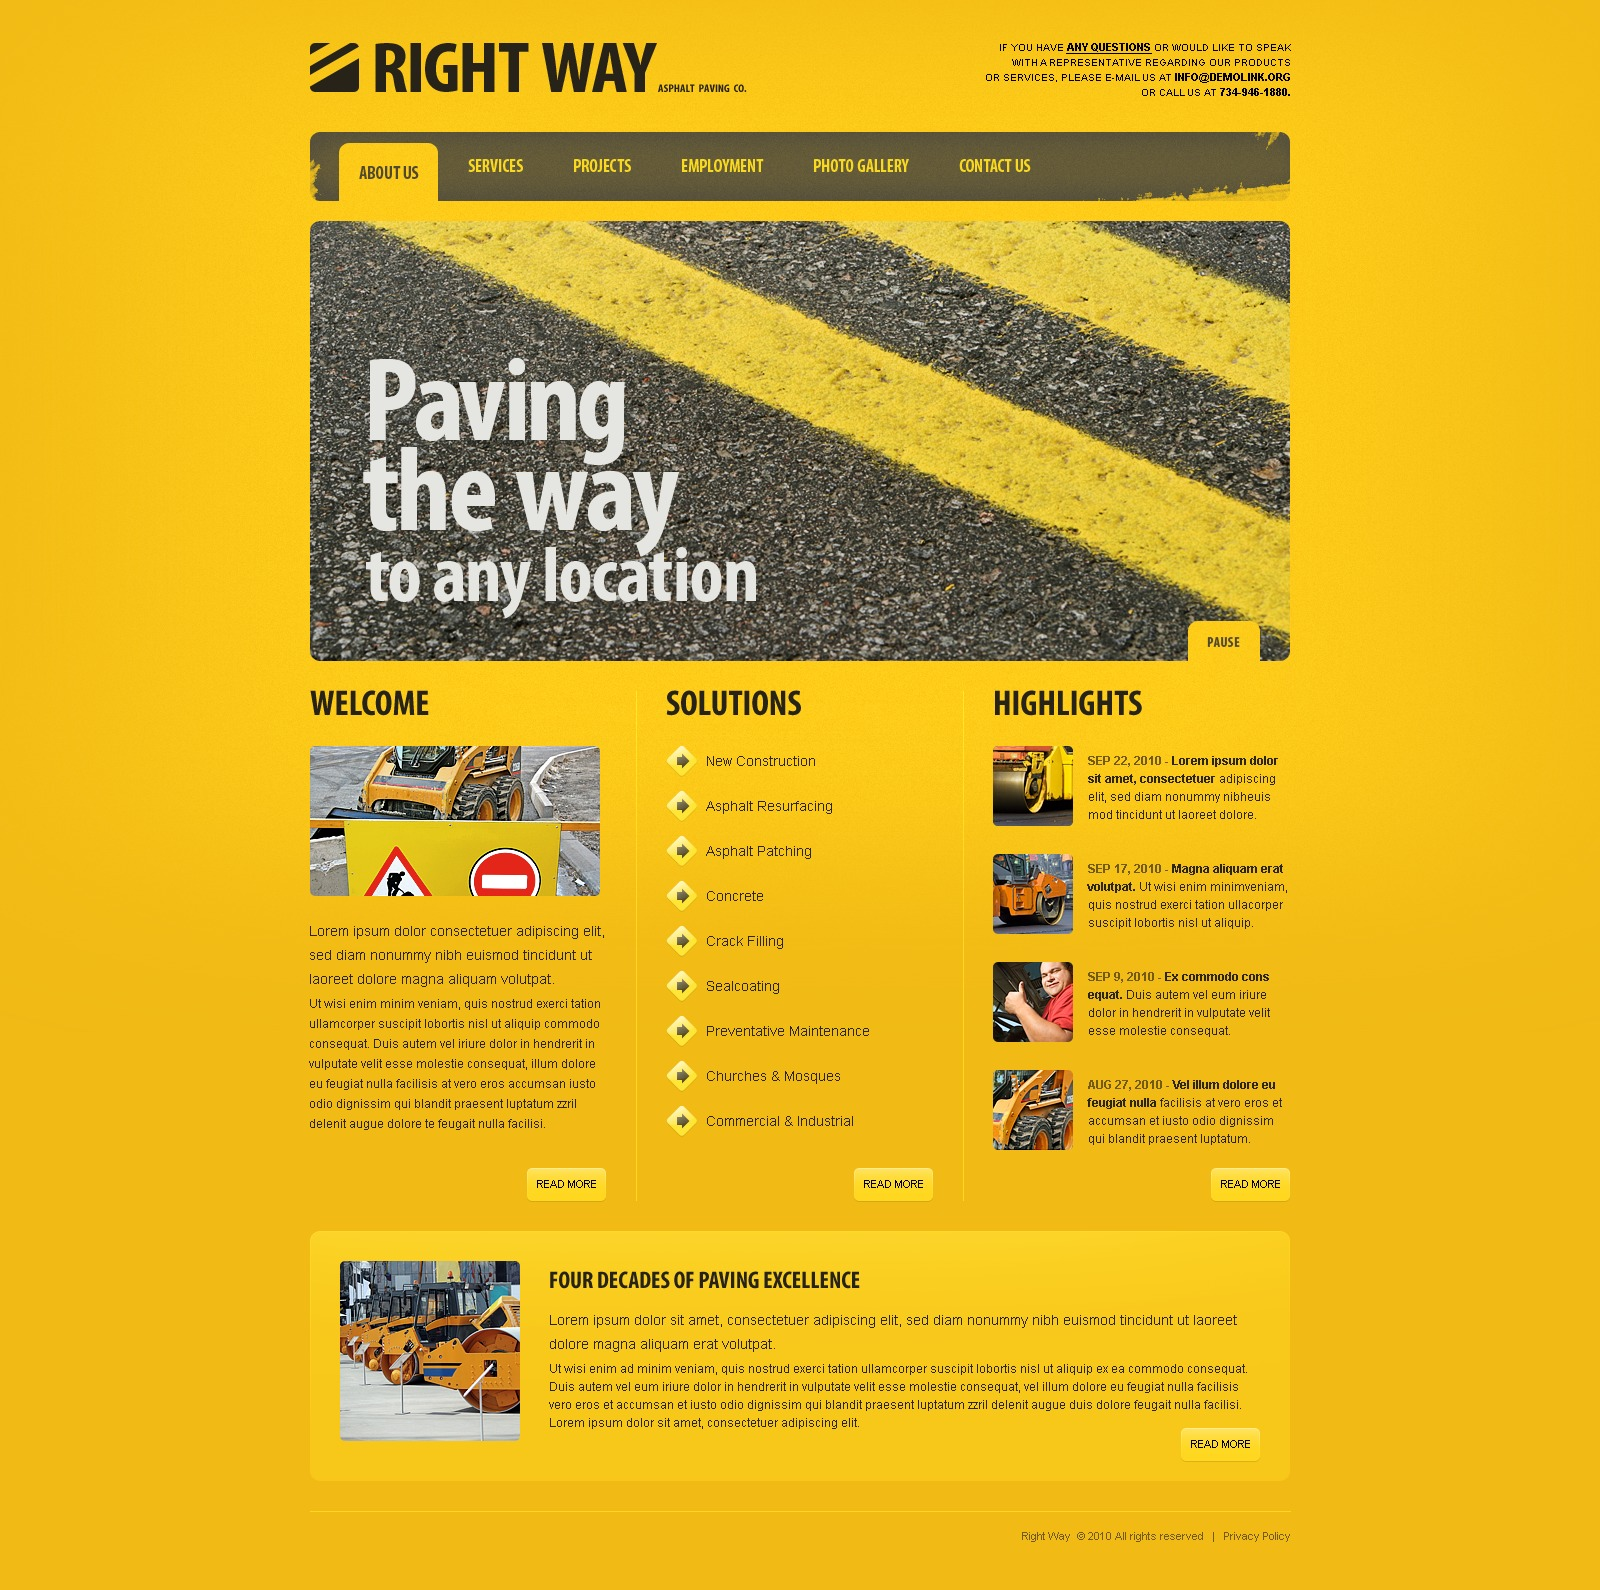 The Right Way PSD Design 54463, one of the best PSD templates of its kind (industrial, most popular, flash 8, wide), also known as right way PSD template, asphalt PSD template, paving PSD template, business PSD template, road PSD template, highway PSD template, pave PSD template, contractor PSD template, bitumen PSD template, services PSD template, projects PSD template, employment PSD template, way and related with right way, asphalt, paving, business, road, highway, pave, contractor, bitumen, services, projects, employment, way, etc.